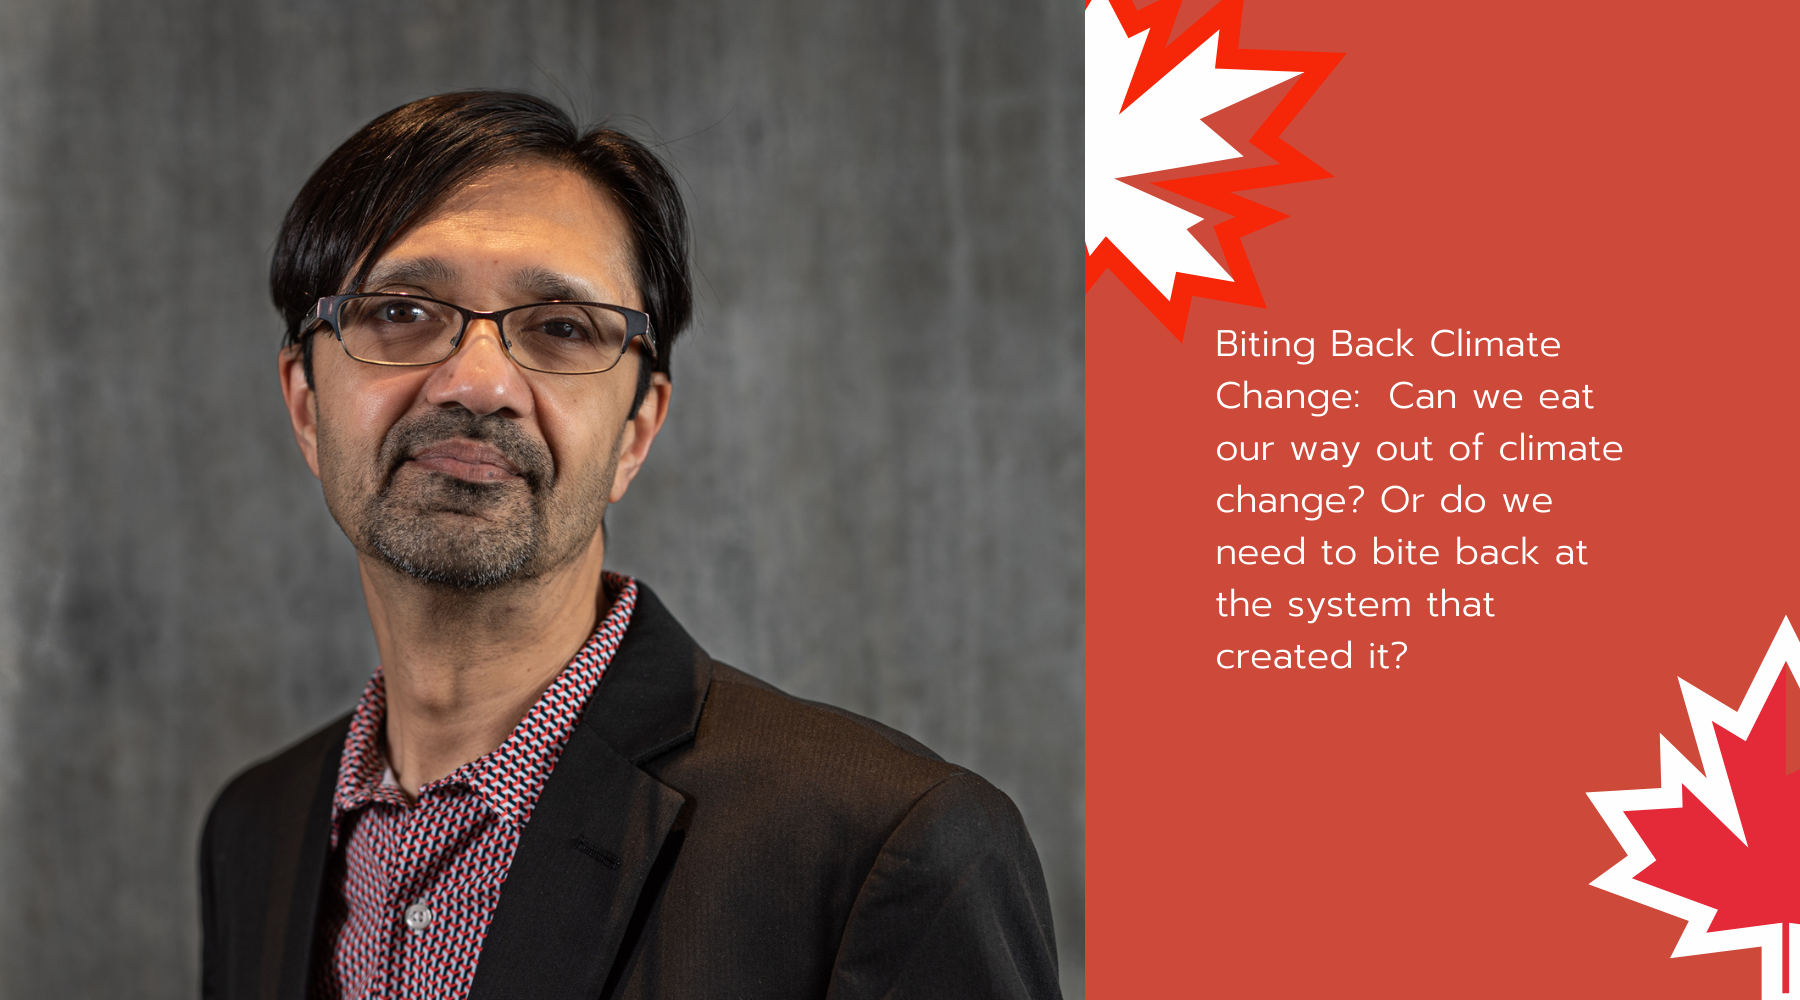 Biting Back Climate Change:  Can we eat our way out of climate change? Or do we need to bite back at the system that created it? - Faris Ahmed topic for January 21st TEDxOttawa event.